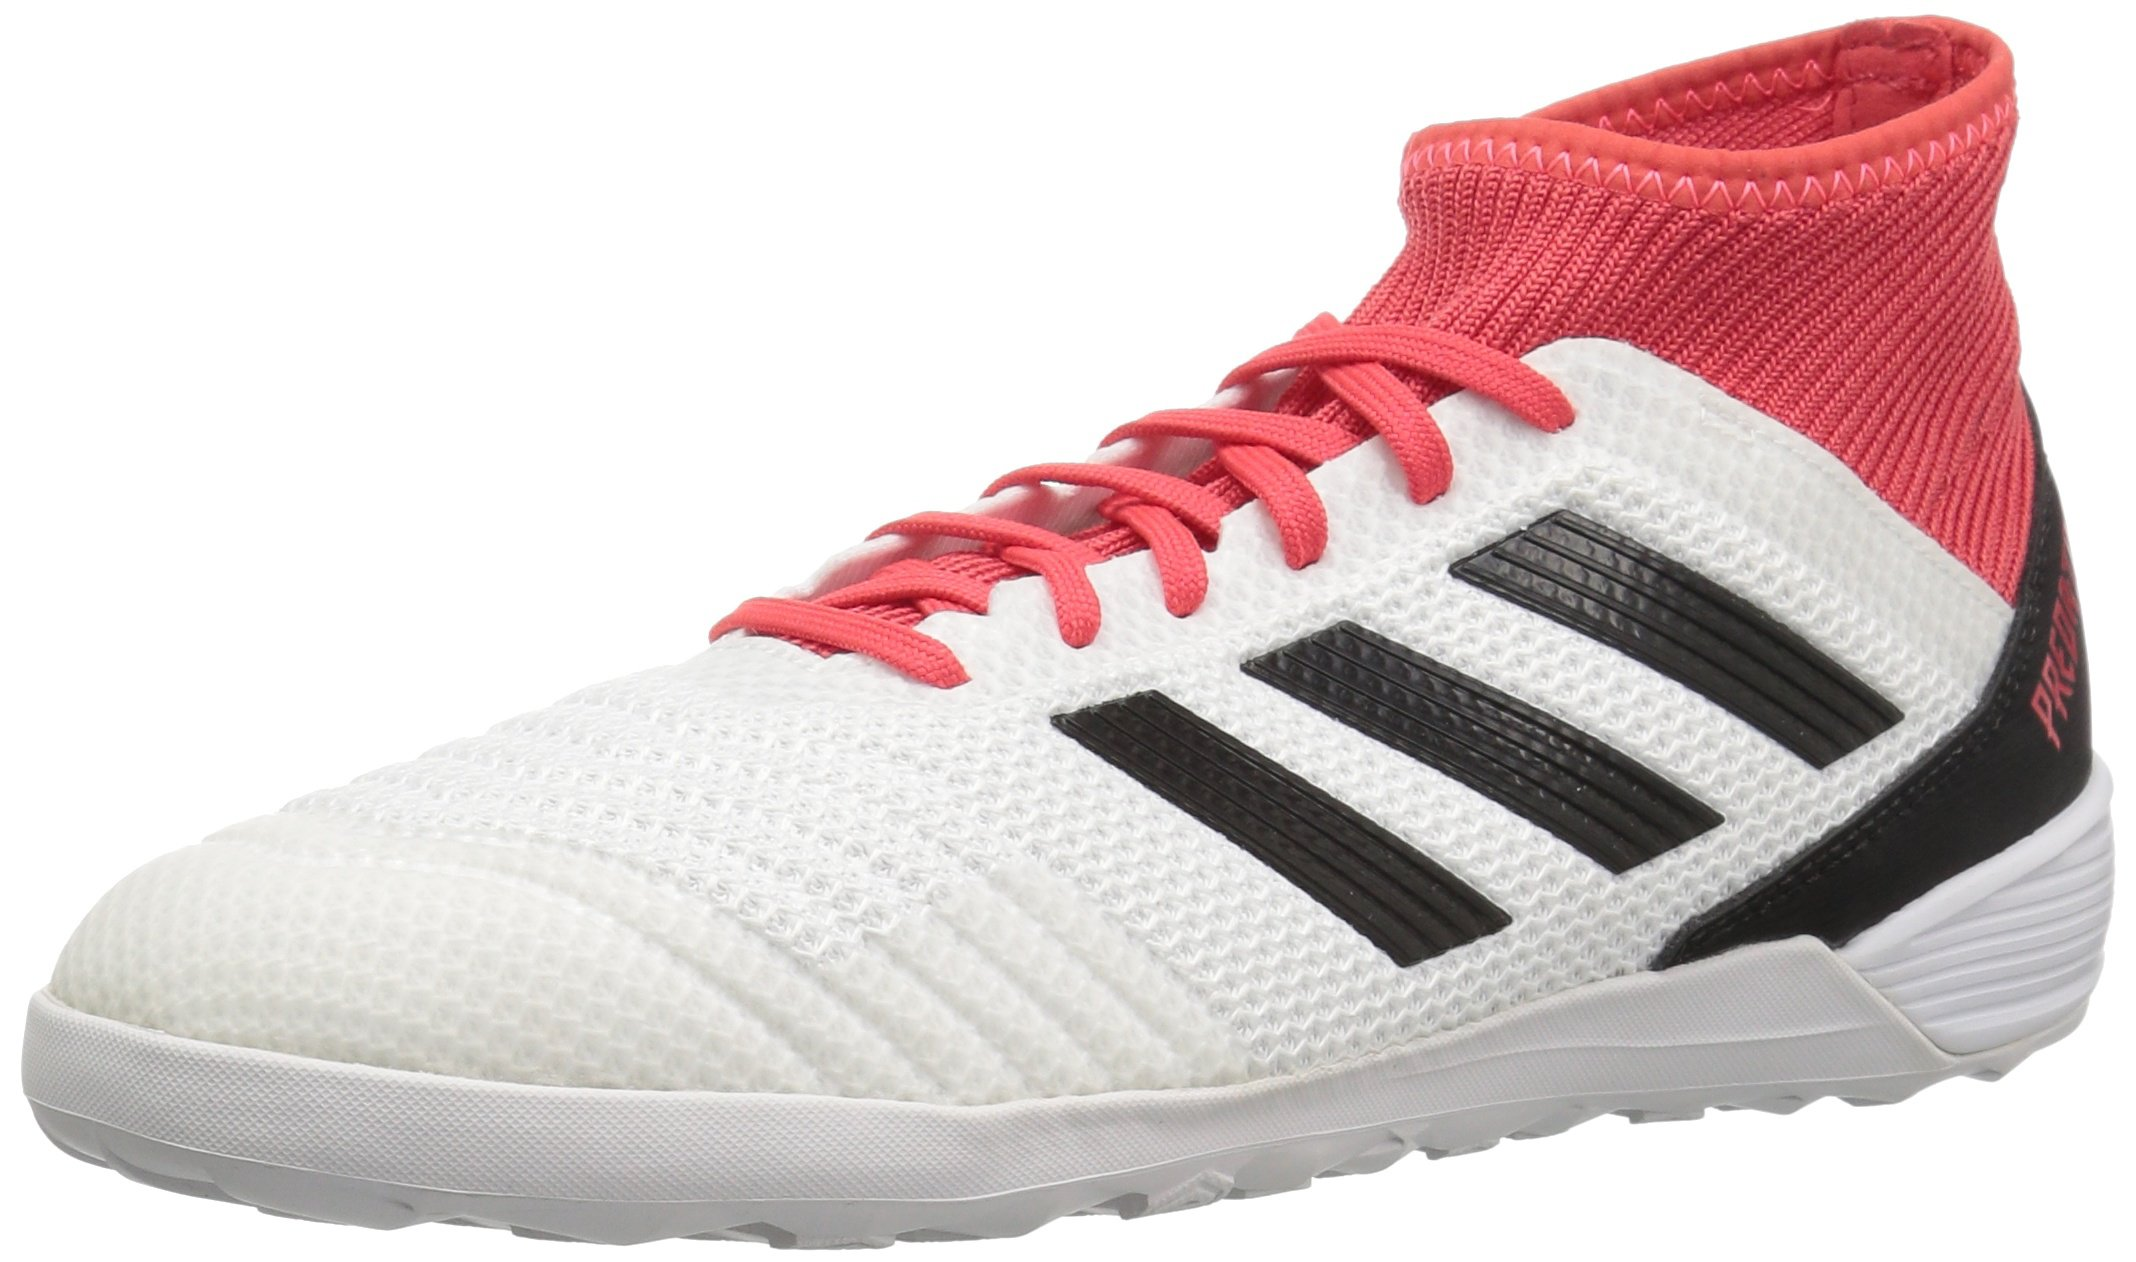 adidas Unisex-Mens Ace Tango 18.3 in, White/Core Black/Real Coral, 10.5 M US